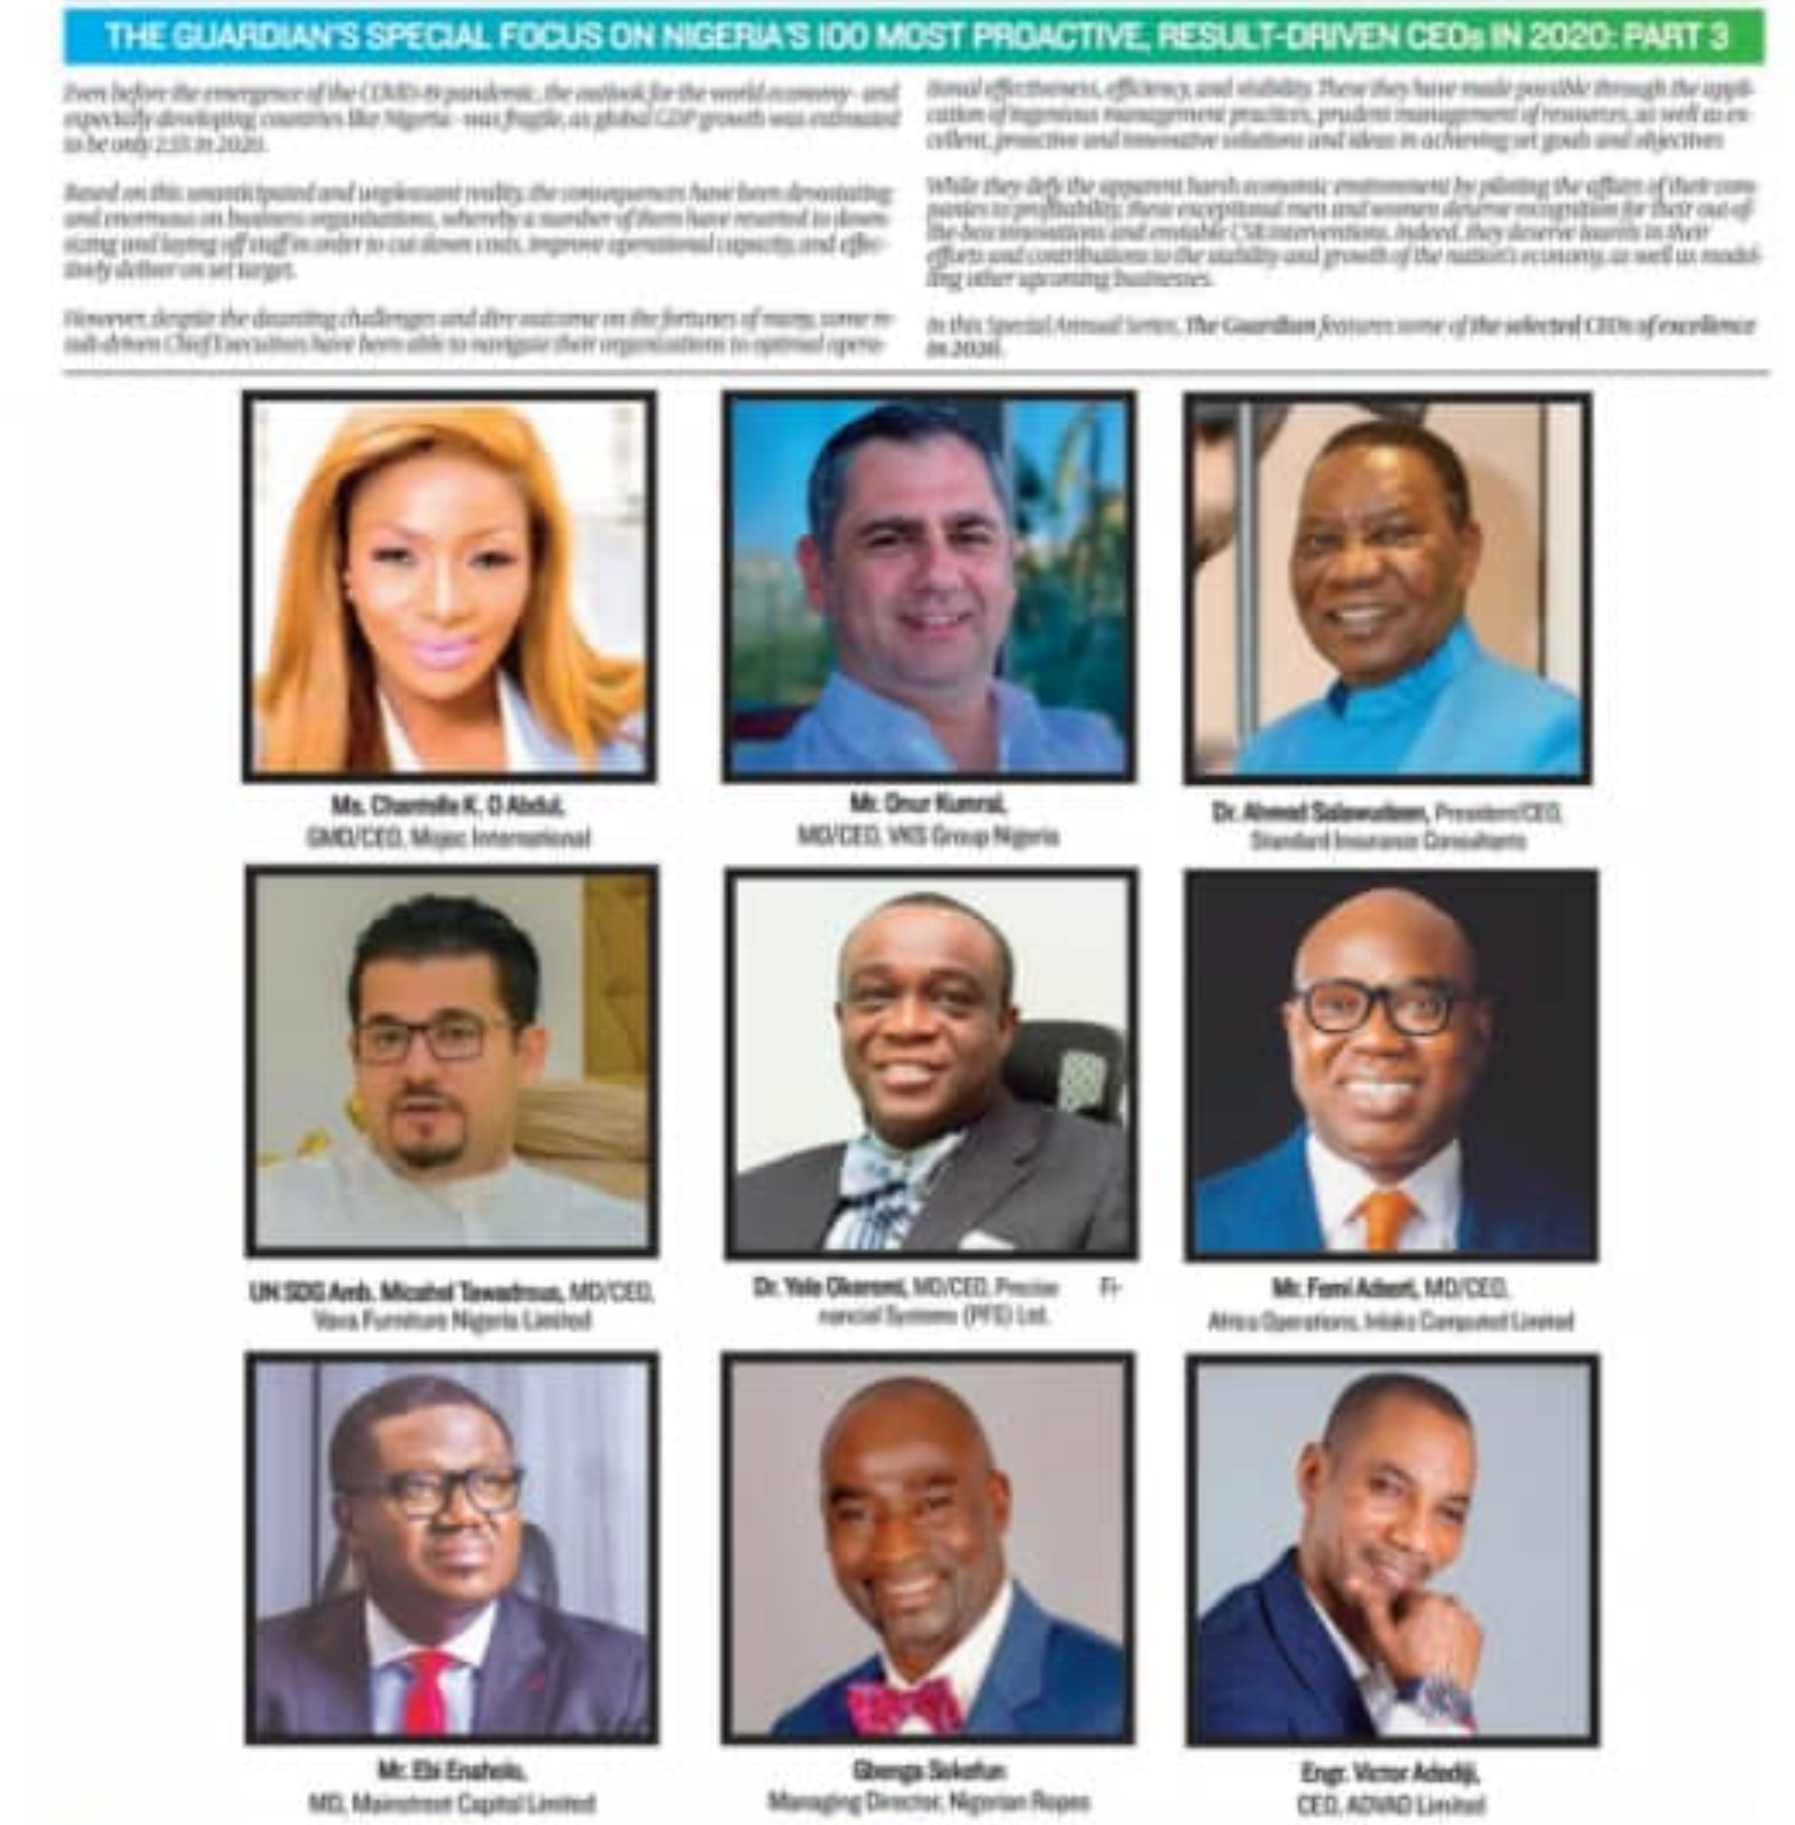 Catch Ebi Enaholos interview on Guardians Special Focus on Nigerias 100 most proactive CEO's in 2020